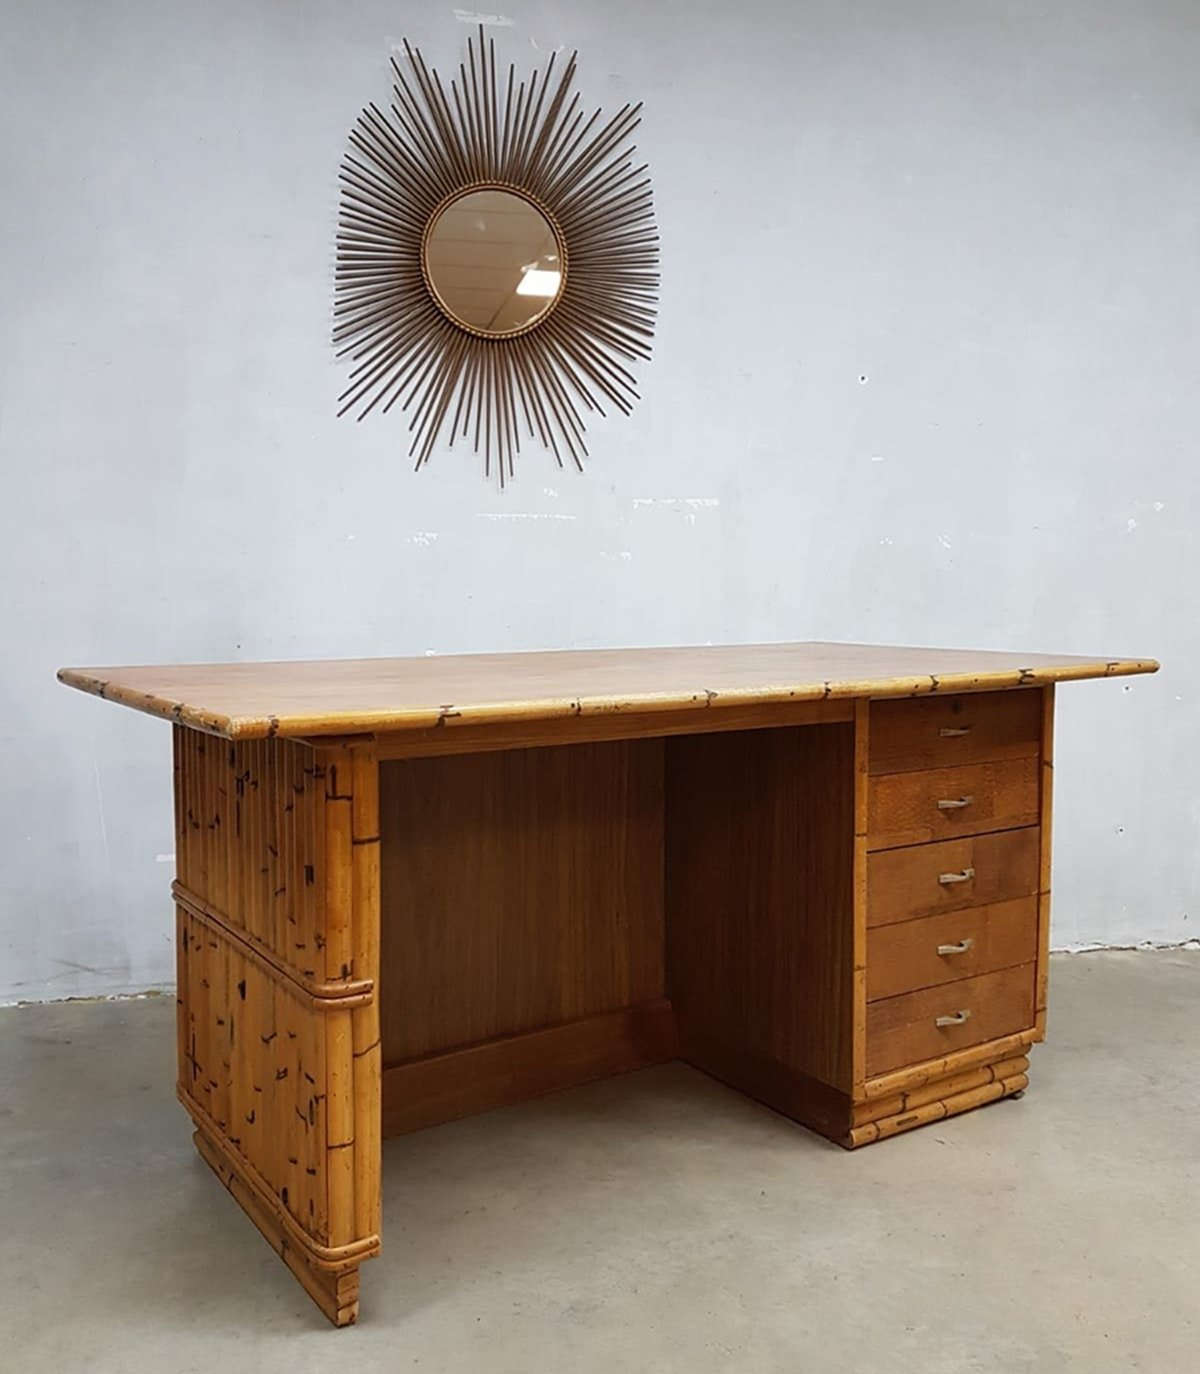 Tiki Style Bamboo Office Desk, 1960s